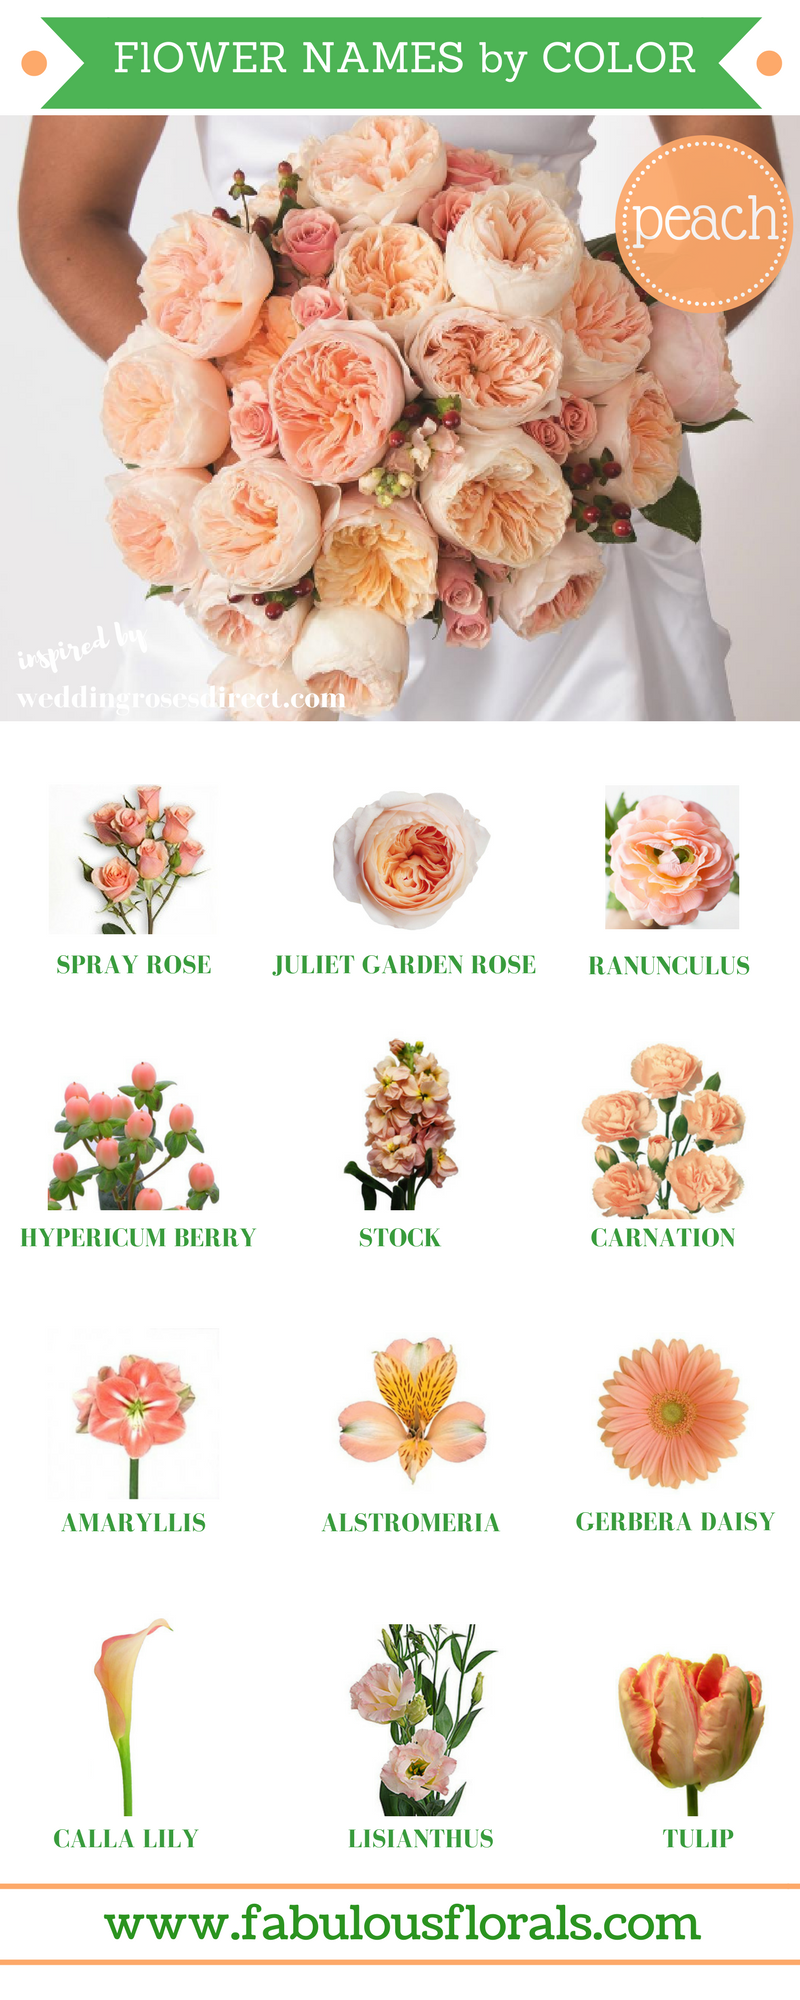 Different types of flowers with names, meanings and types